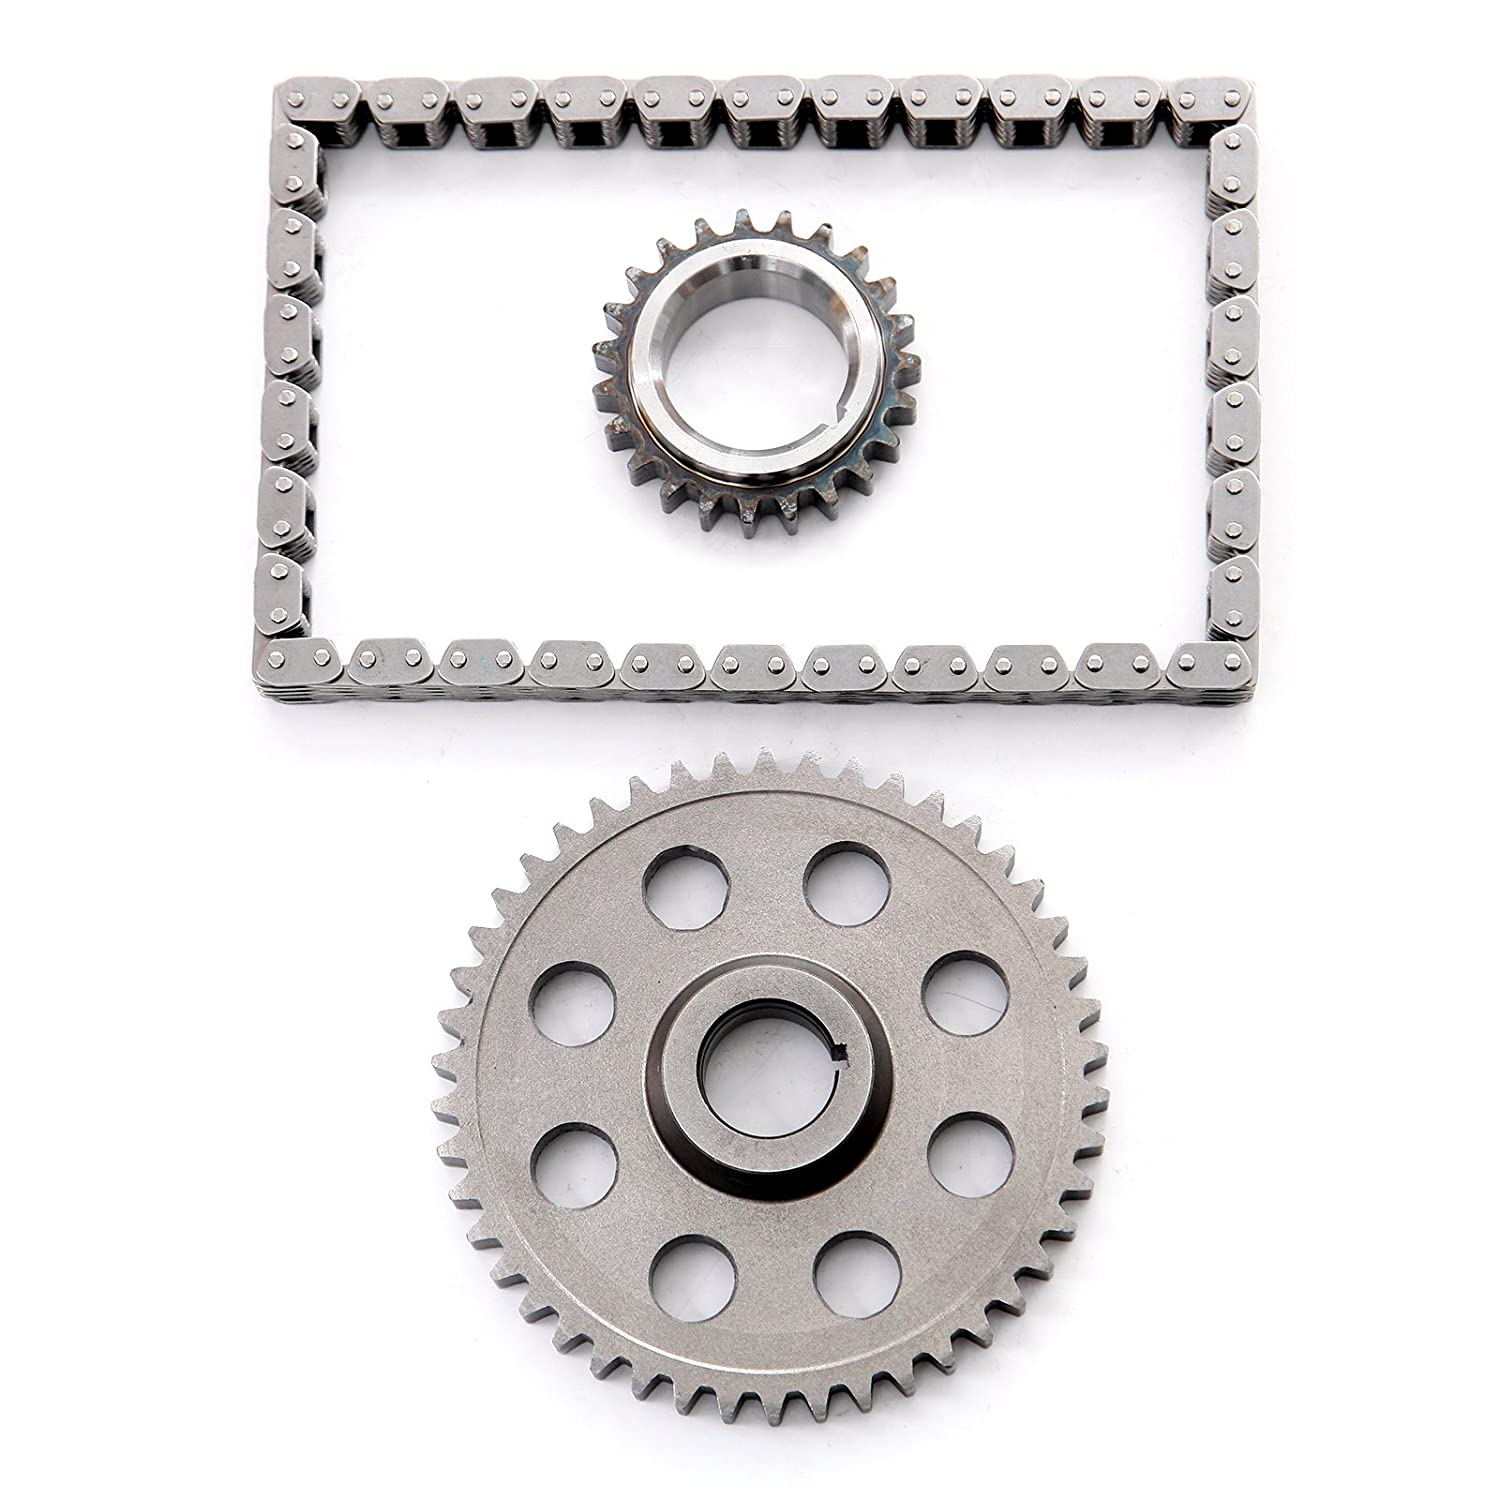 OCPTY Timing Chain Kit Sprockets fits for 90-03 Jeep Grand Cherokee Grand Wagoneer 5.2L 5.9L V8 OHV TK1140